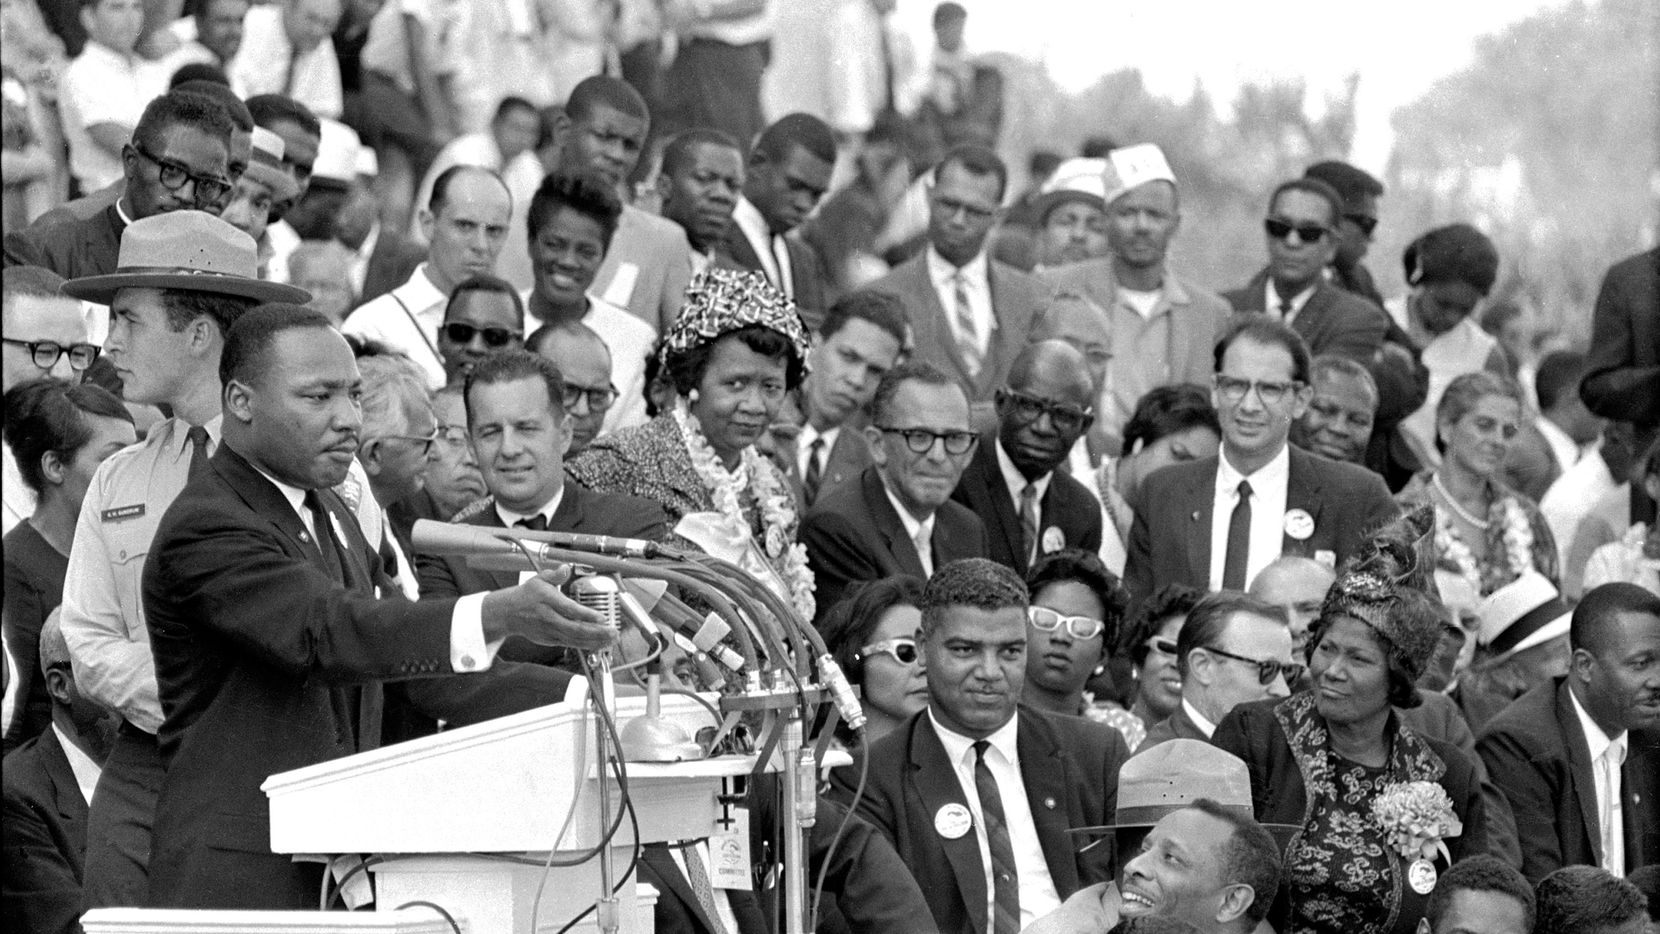 """The Rev. Dr. Martin Luther King Jr., head of the Southern Christian Leadership Conference, speaks to thousands during his """"I Have a Dream"""" speech in front of the Lincoln Memorial for the March on Washington for Jobs and Freedom in Washington on Aug. 28, 1963. (AP Photo/File)"""